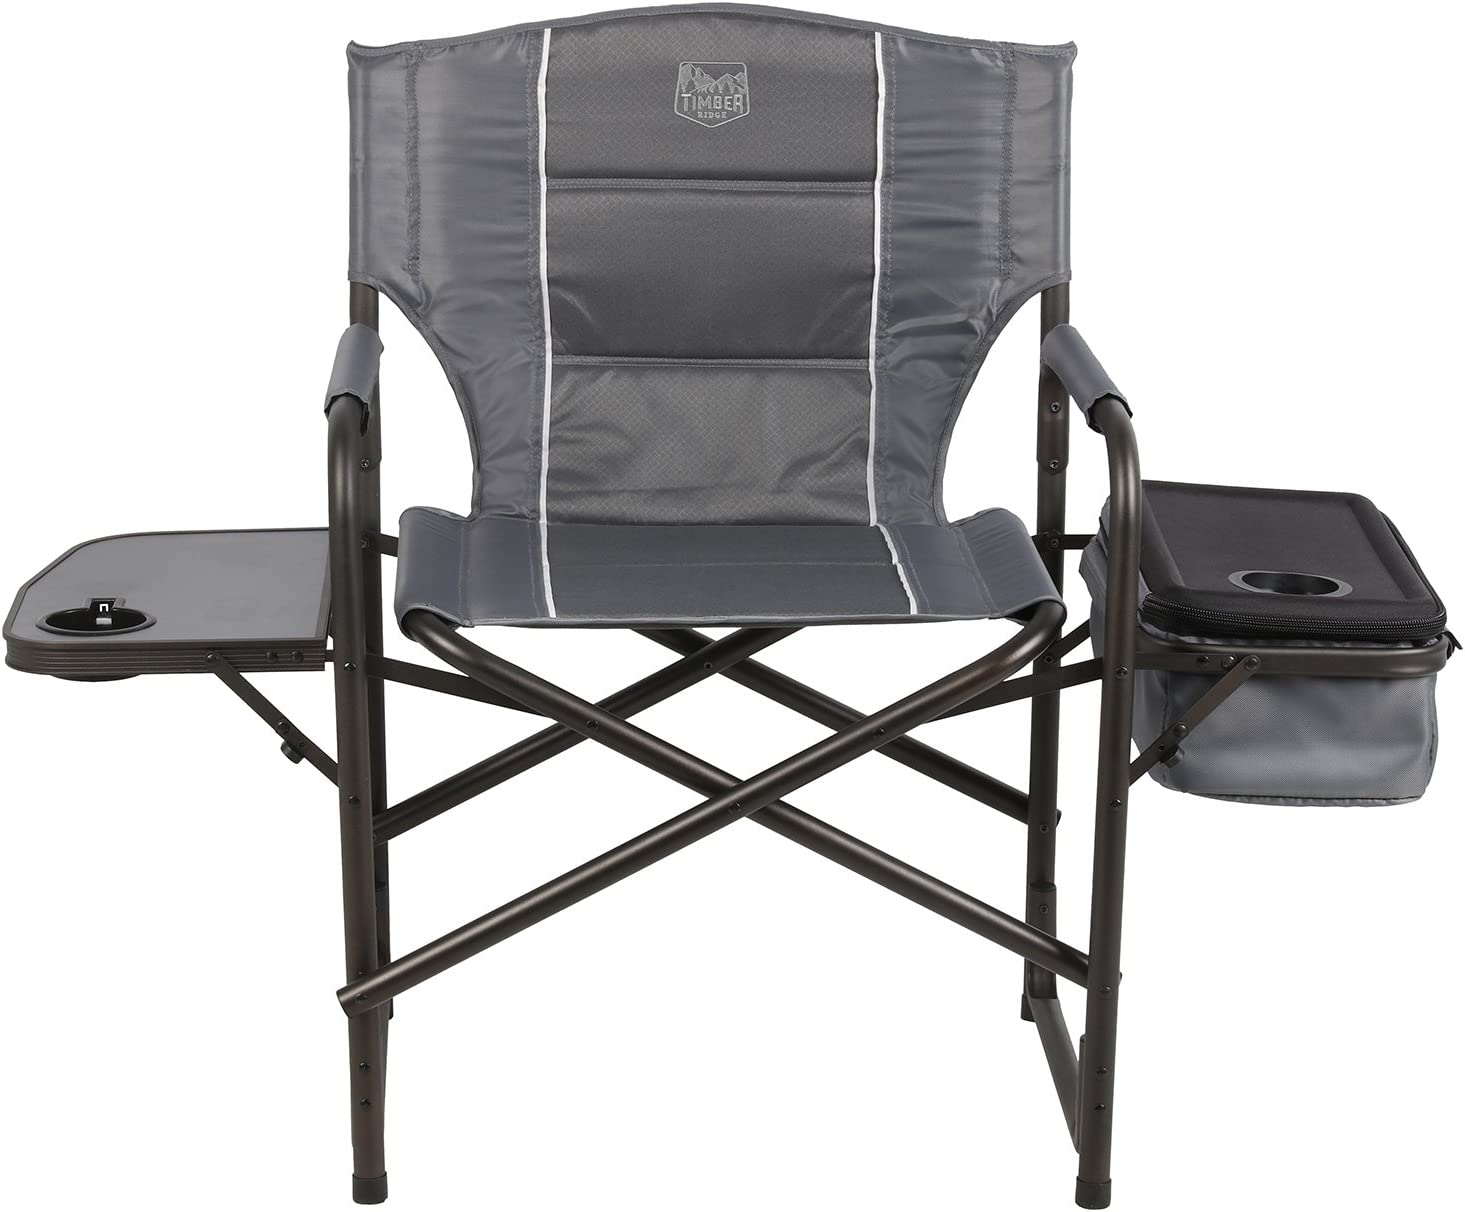 Timber Ridge Laurel Director s Chair with Cooler Bag Side Table, Grey